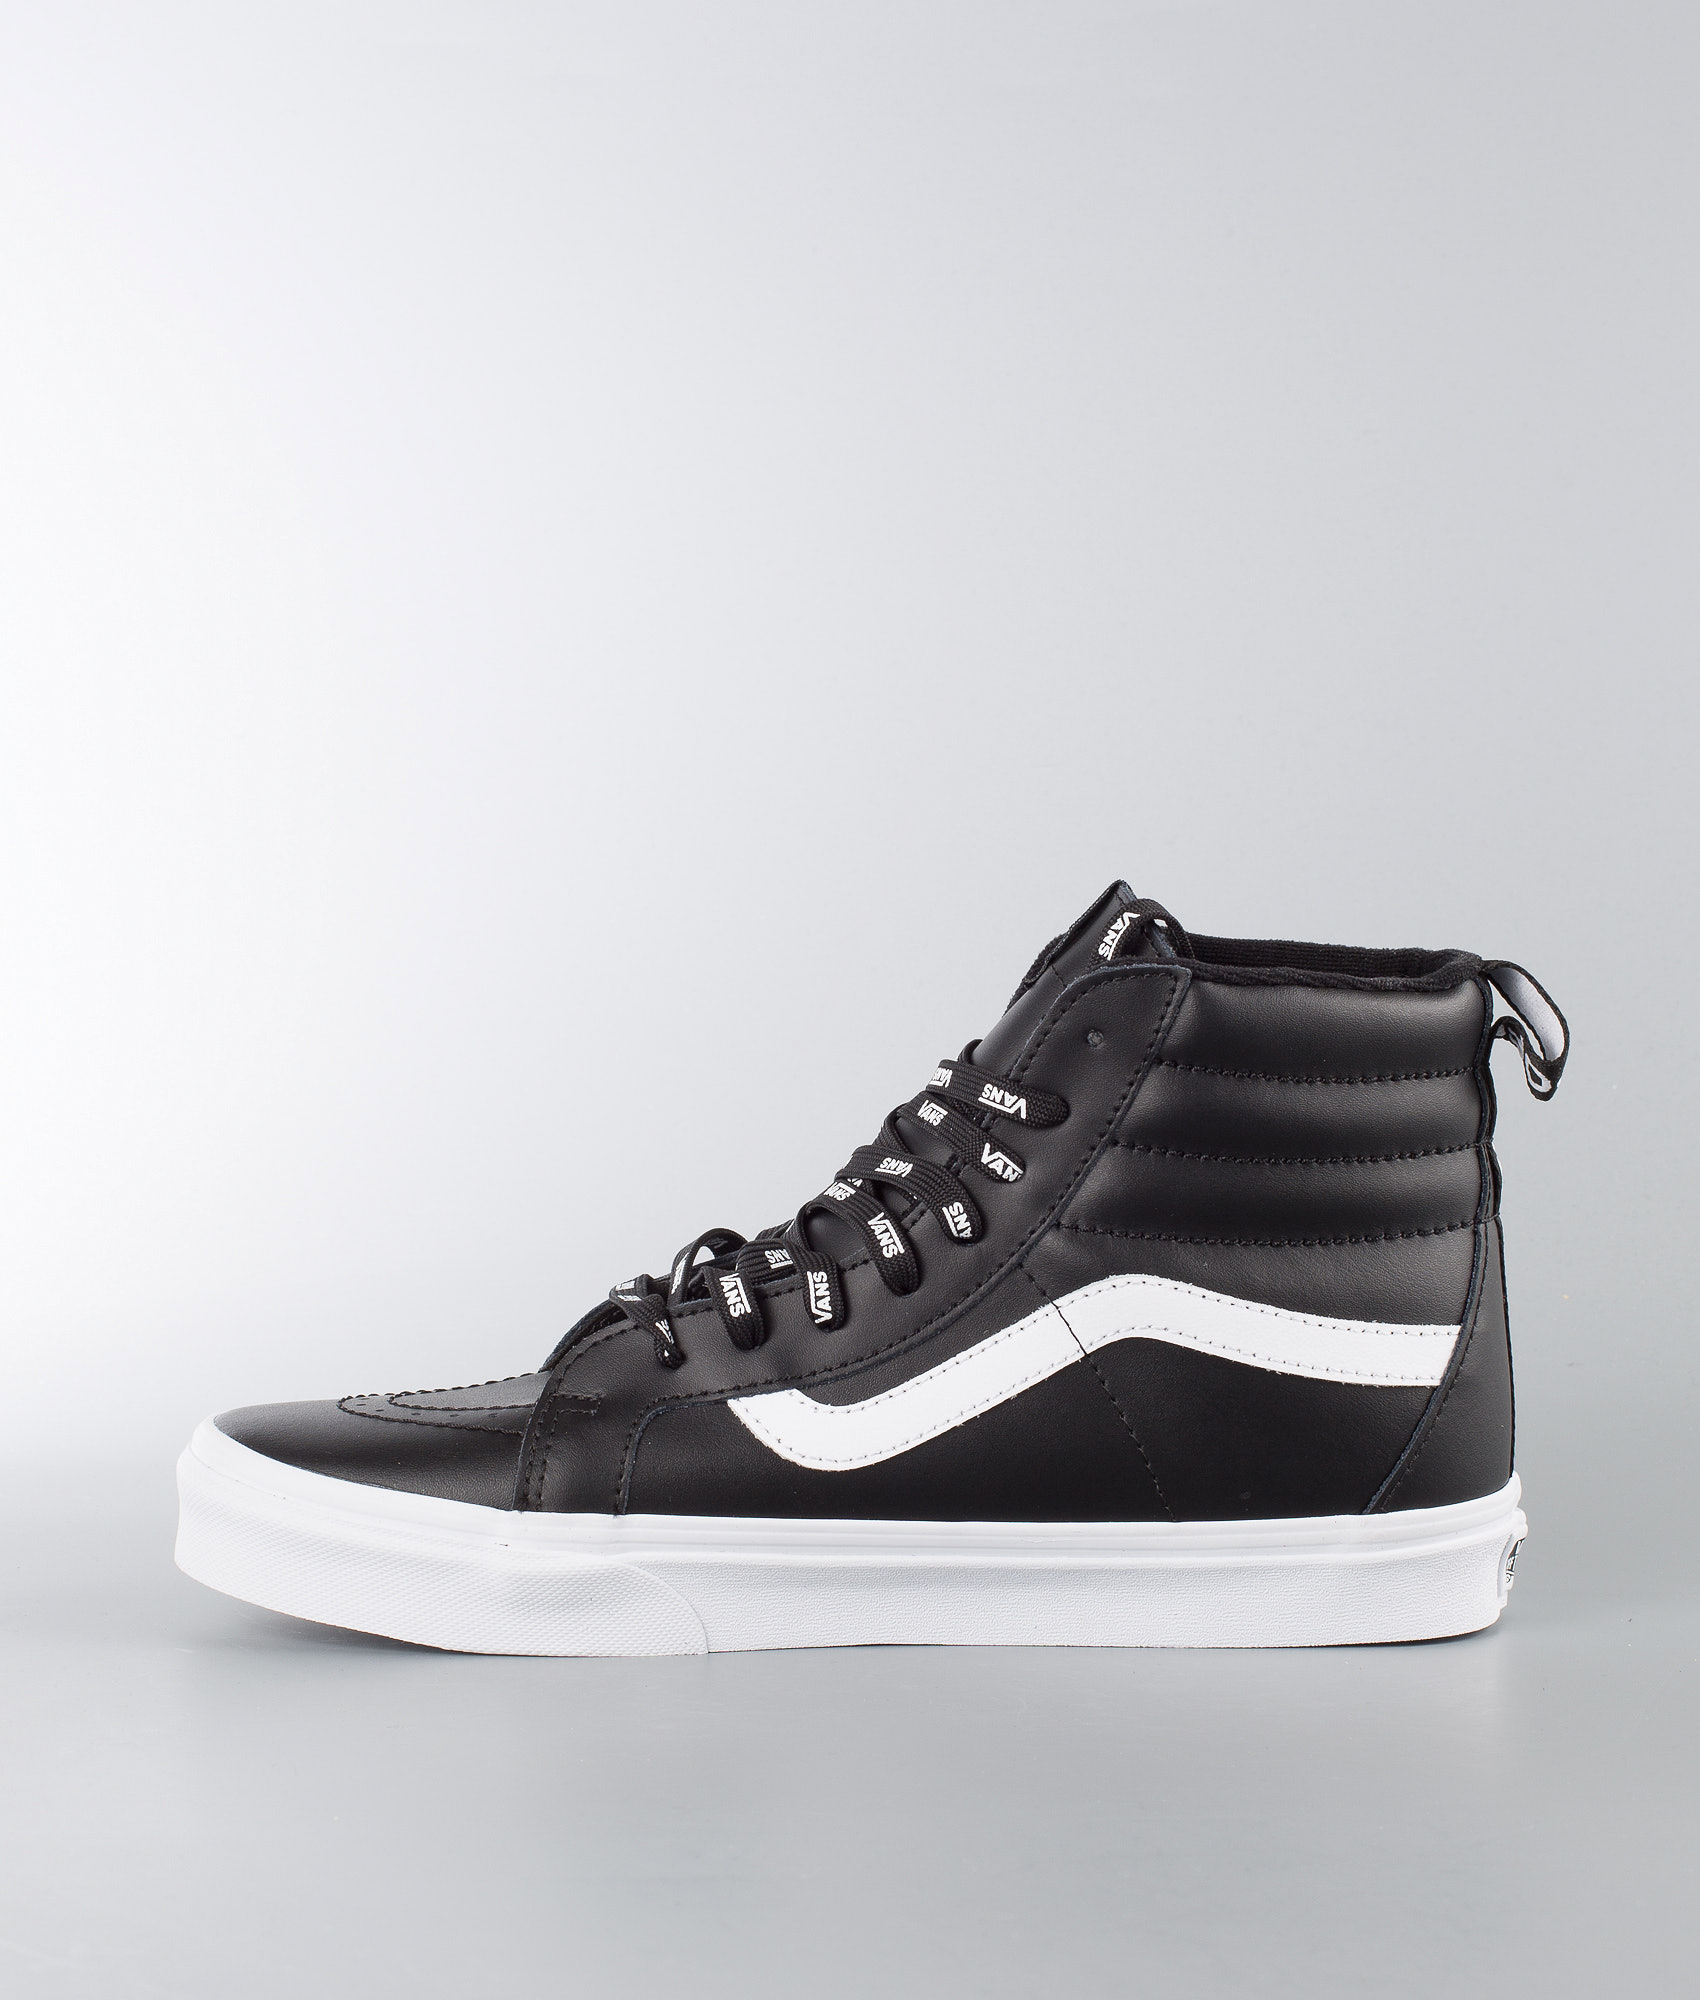 714dfa841a Vans Sk8-Hi Reissue Shoes (Otw Webbing) Black Leather - Ridestore.com